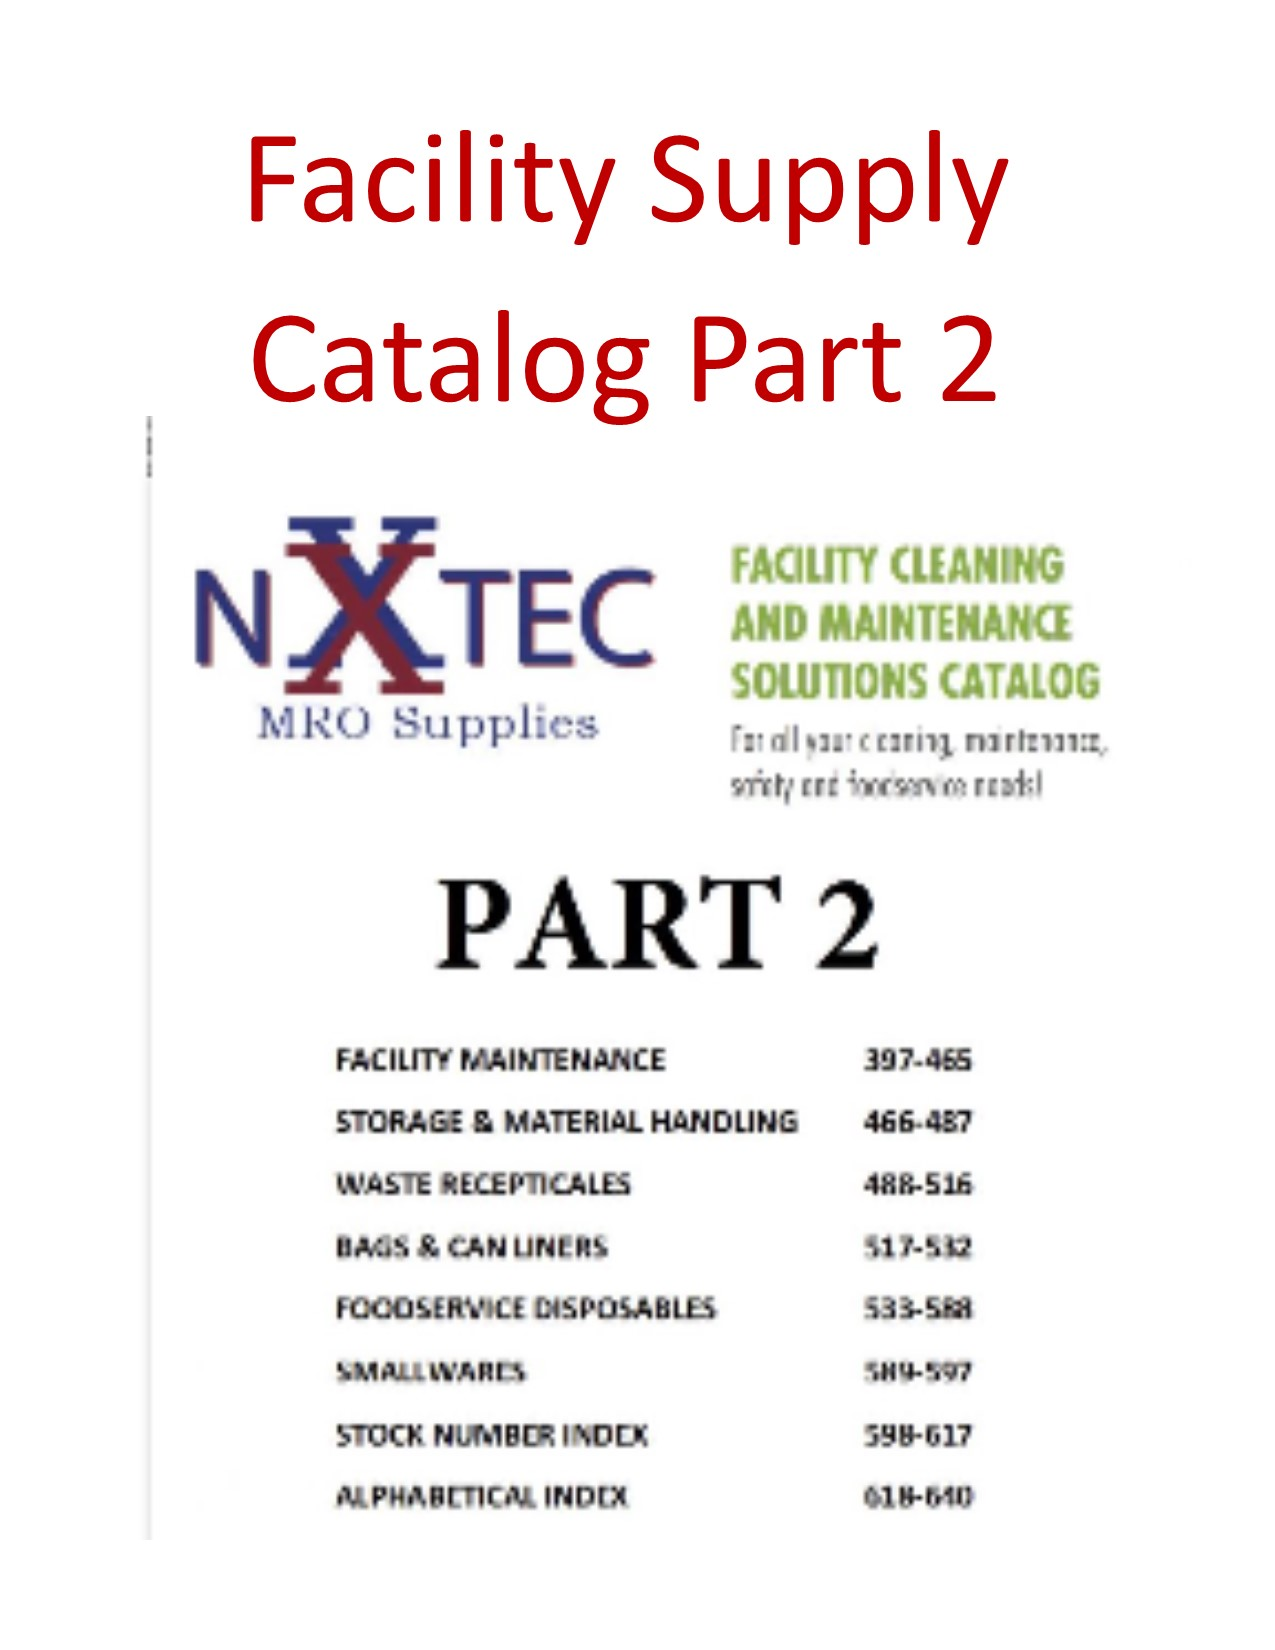 Facility Supply Catalog Part 2